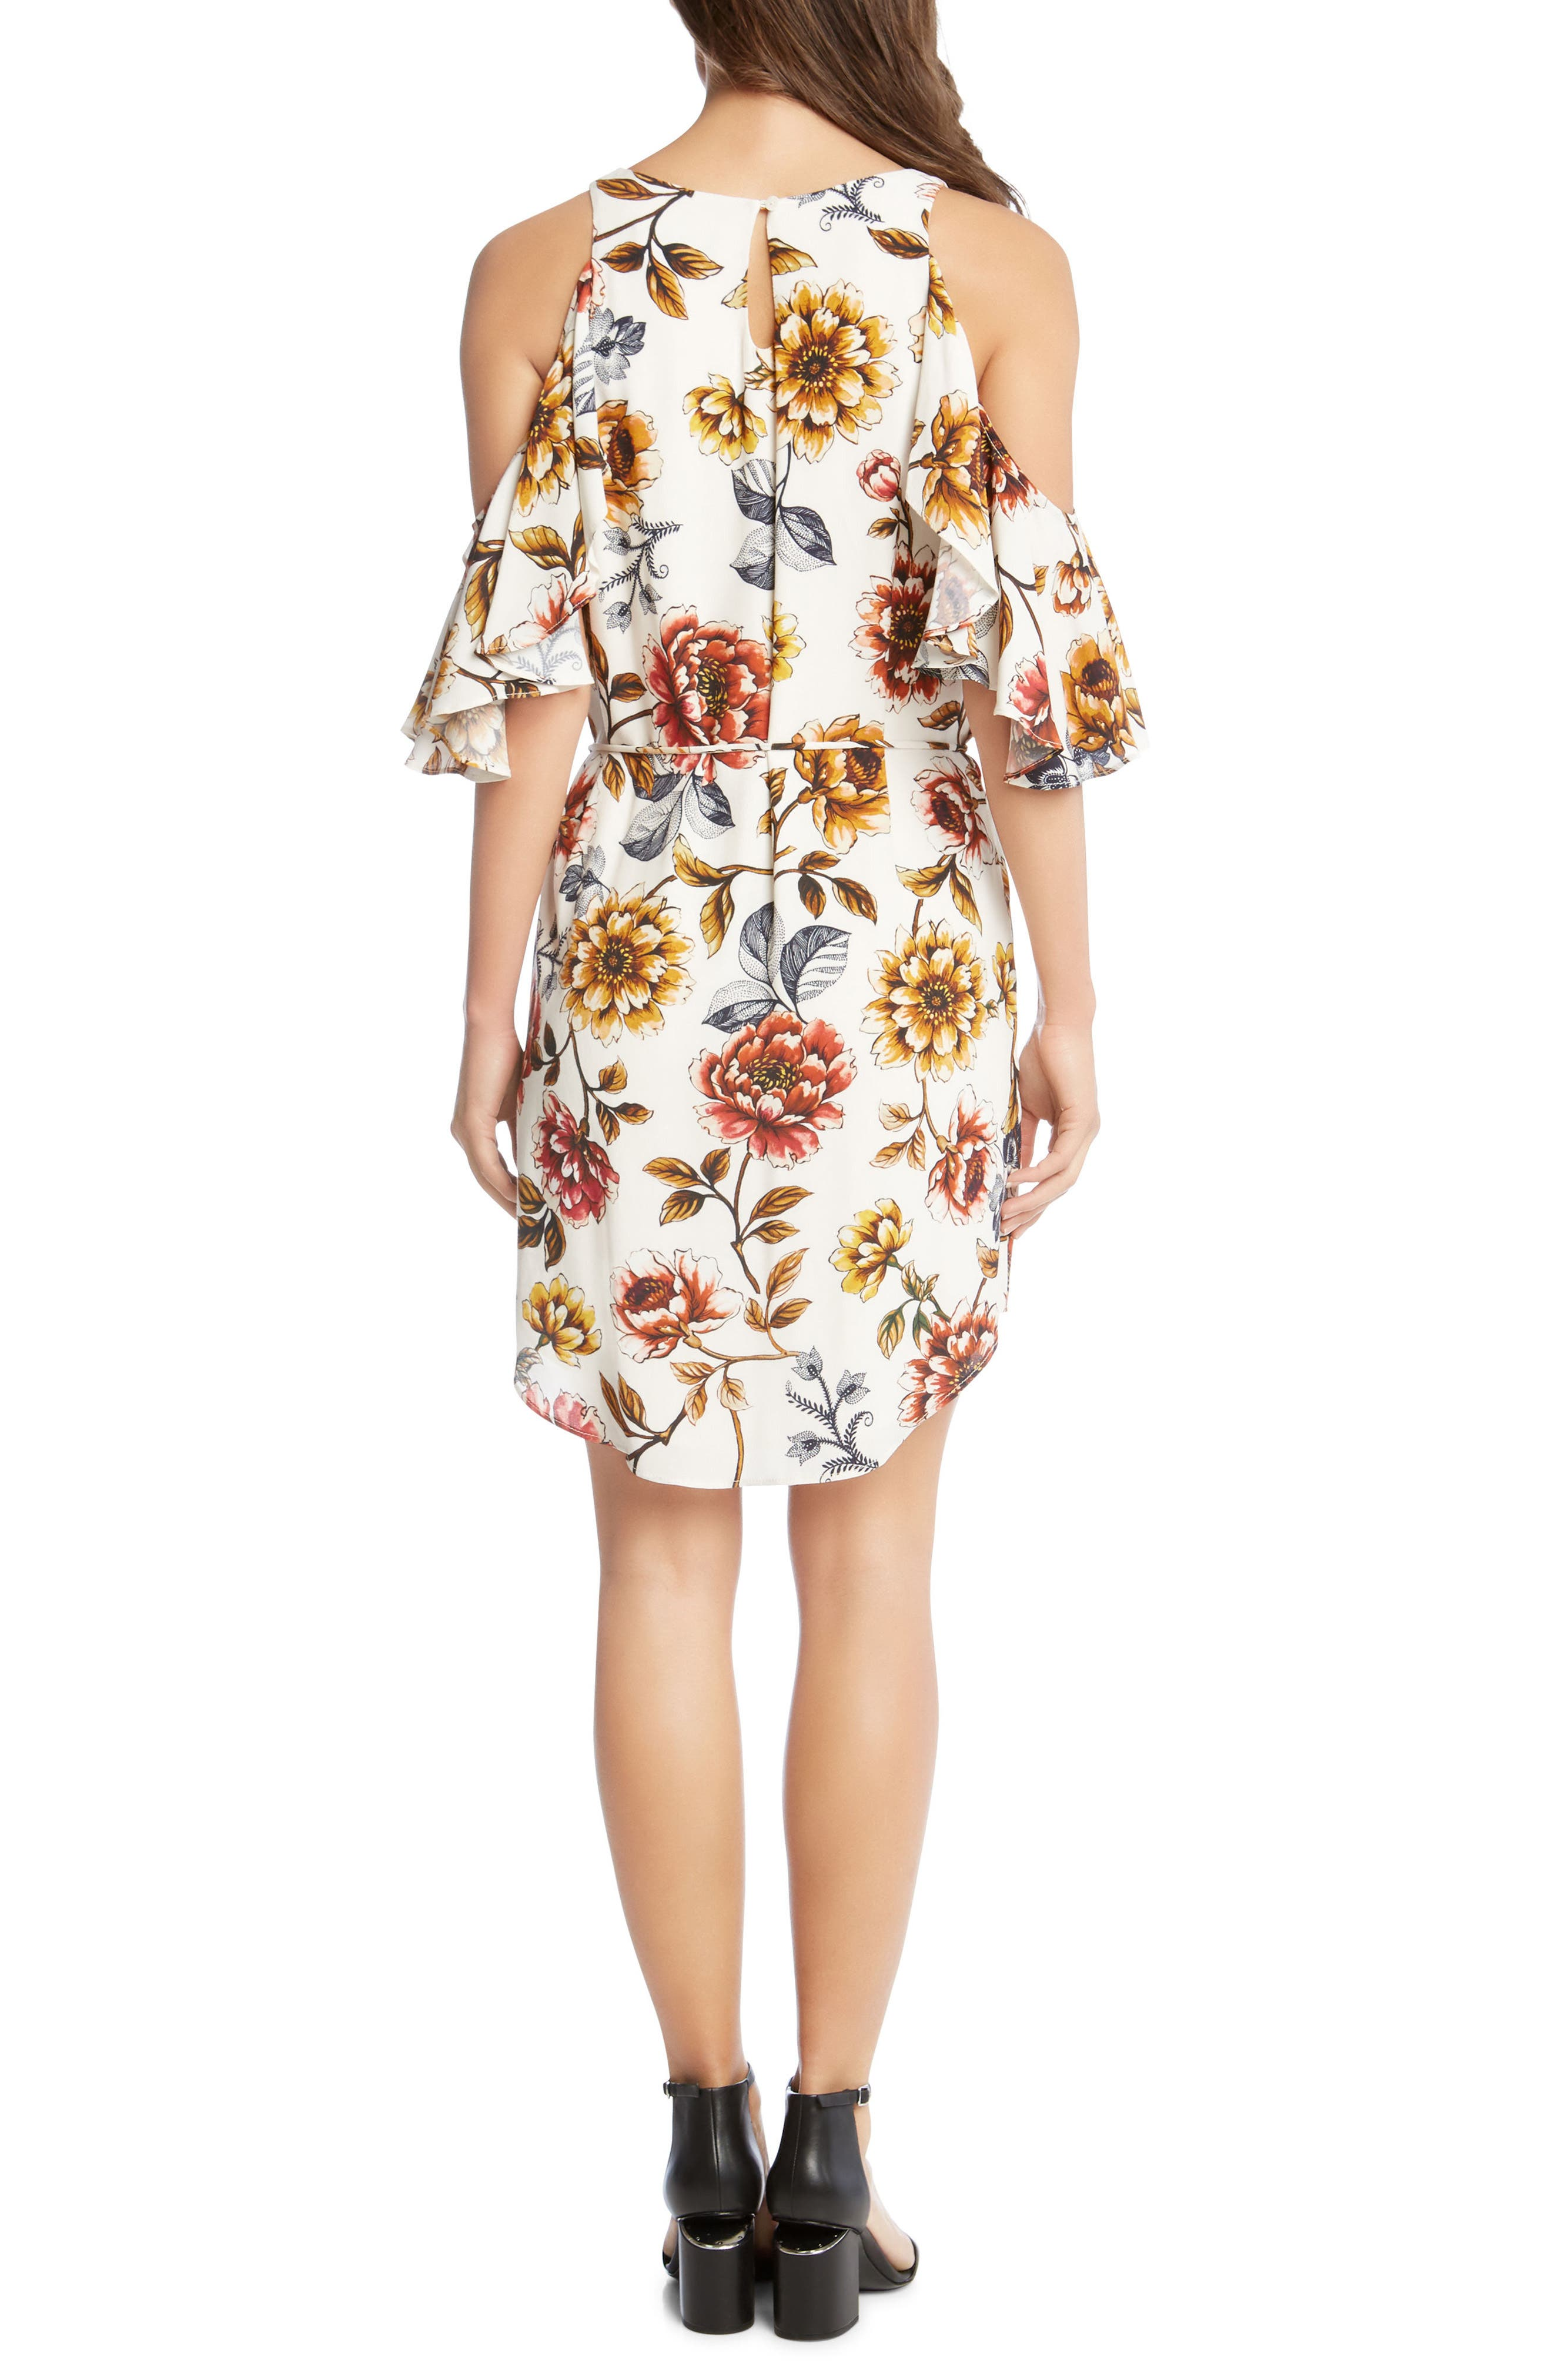 Kane Kane Cold Shoulder Floral Dress,                             Alternate thumbnail 2, color,                             PRINT